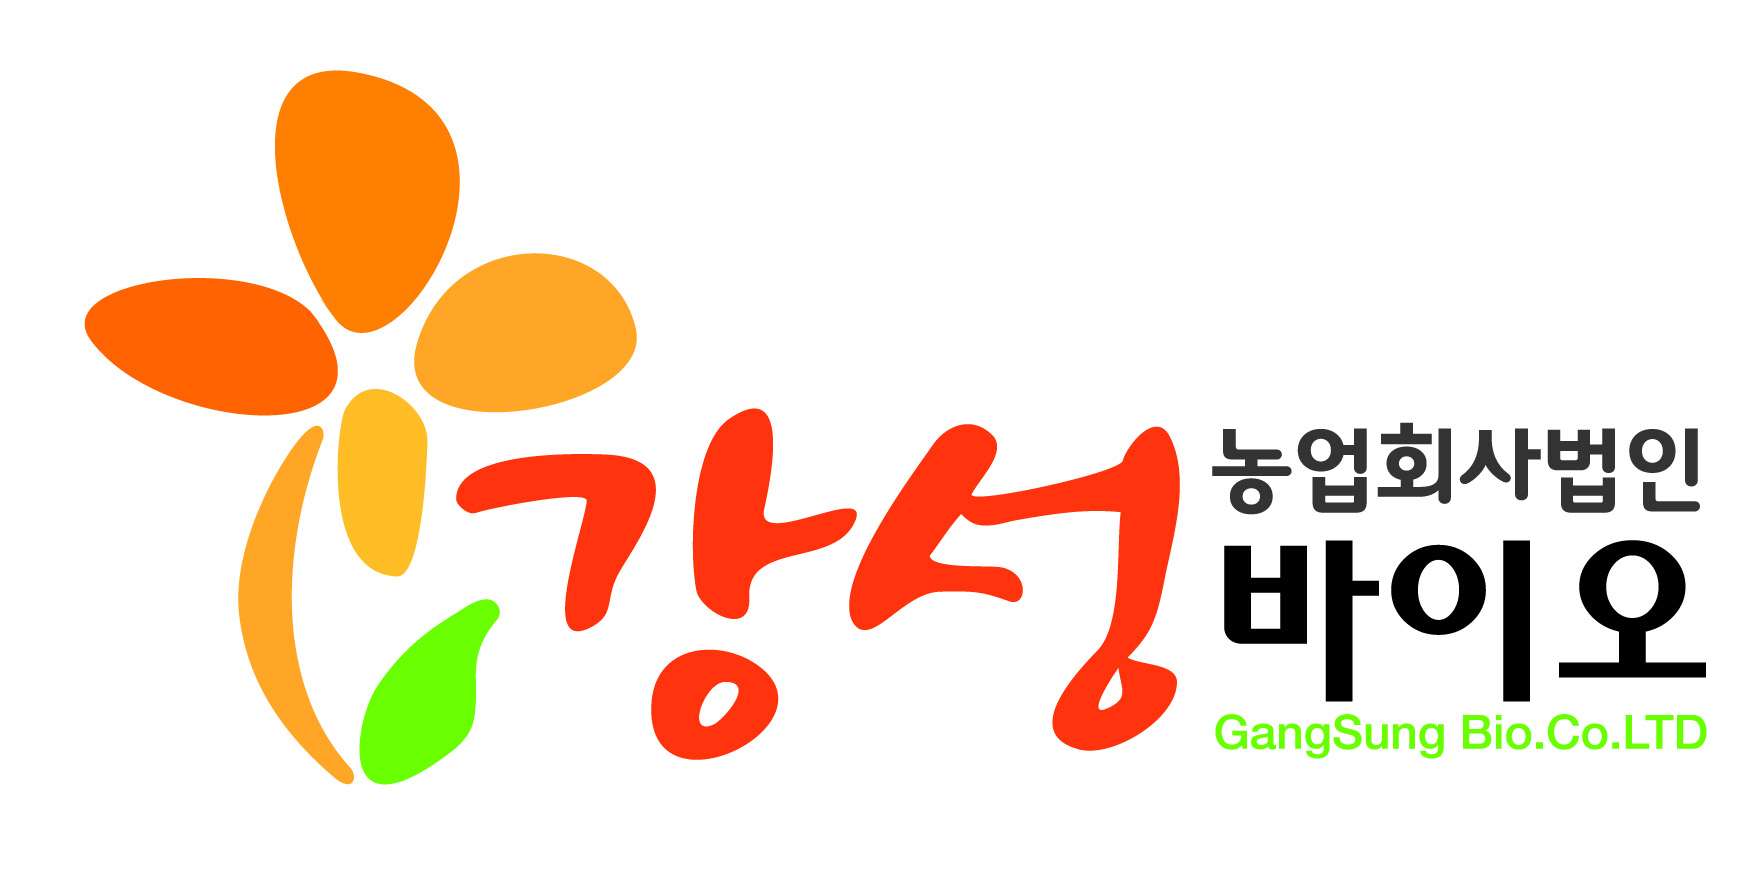 GangSung Bio co., Ltd